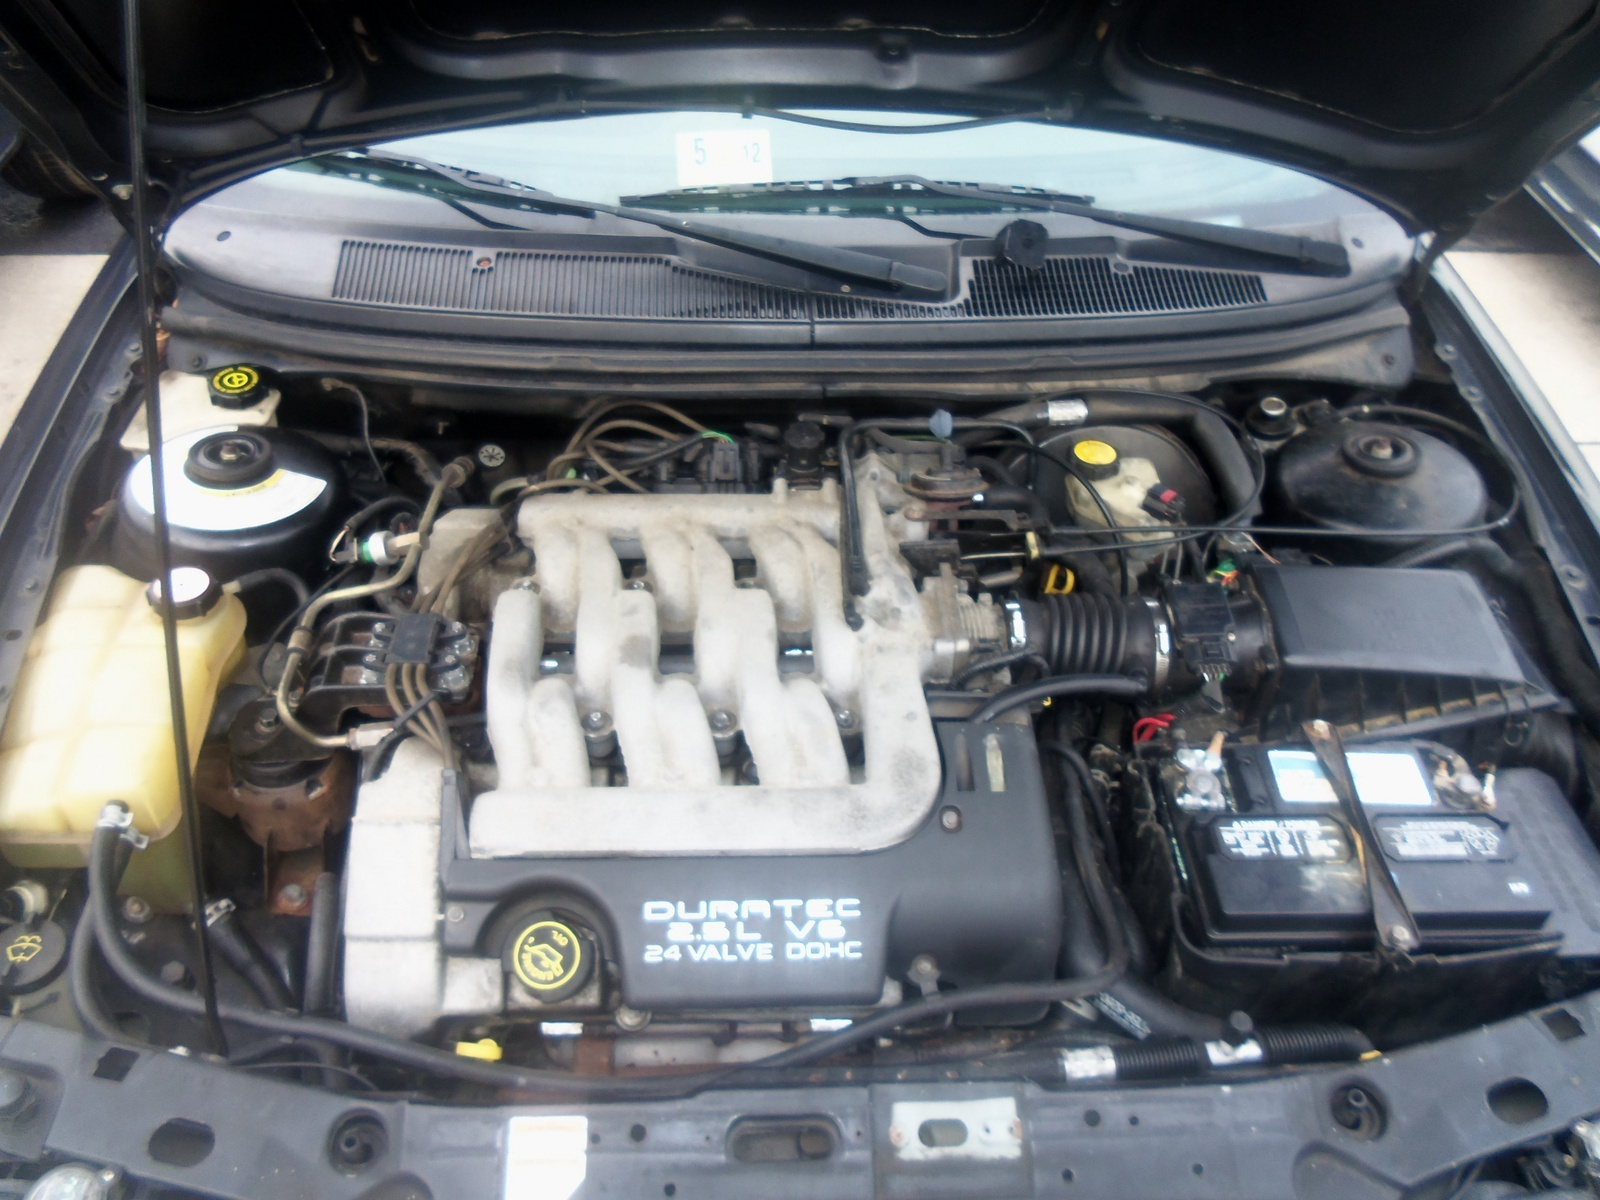 ford contour svt questions - engine compression issue ... 2000 lincoln ls v6 engine diagram #9